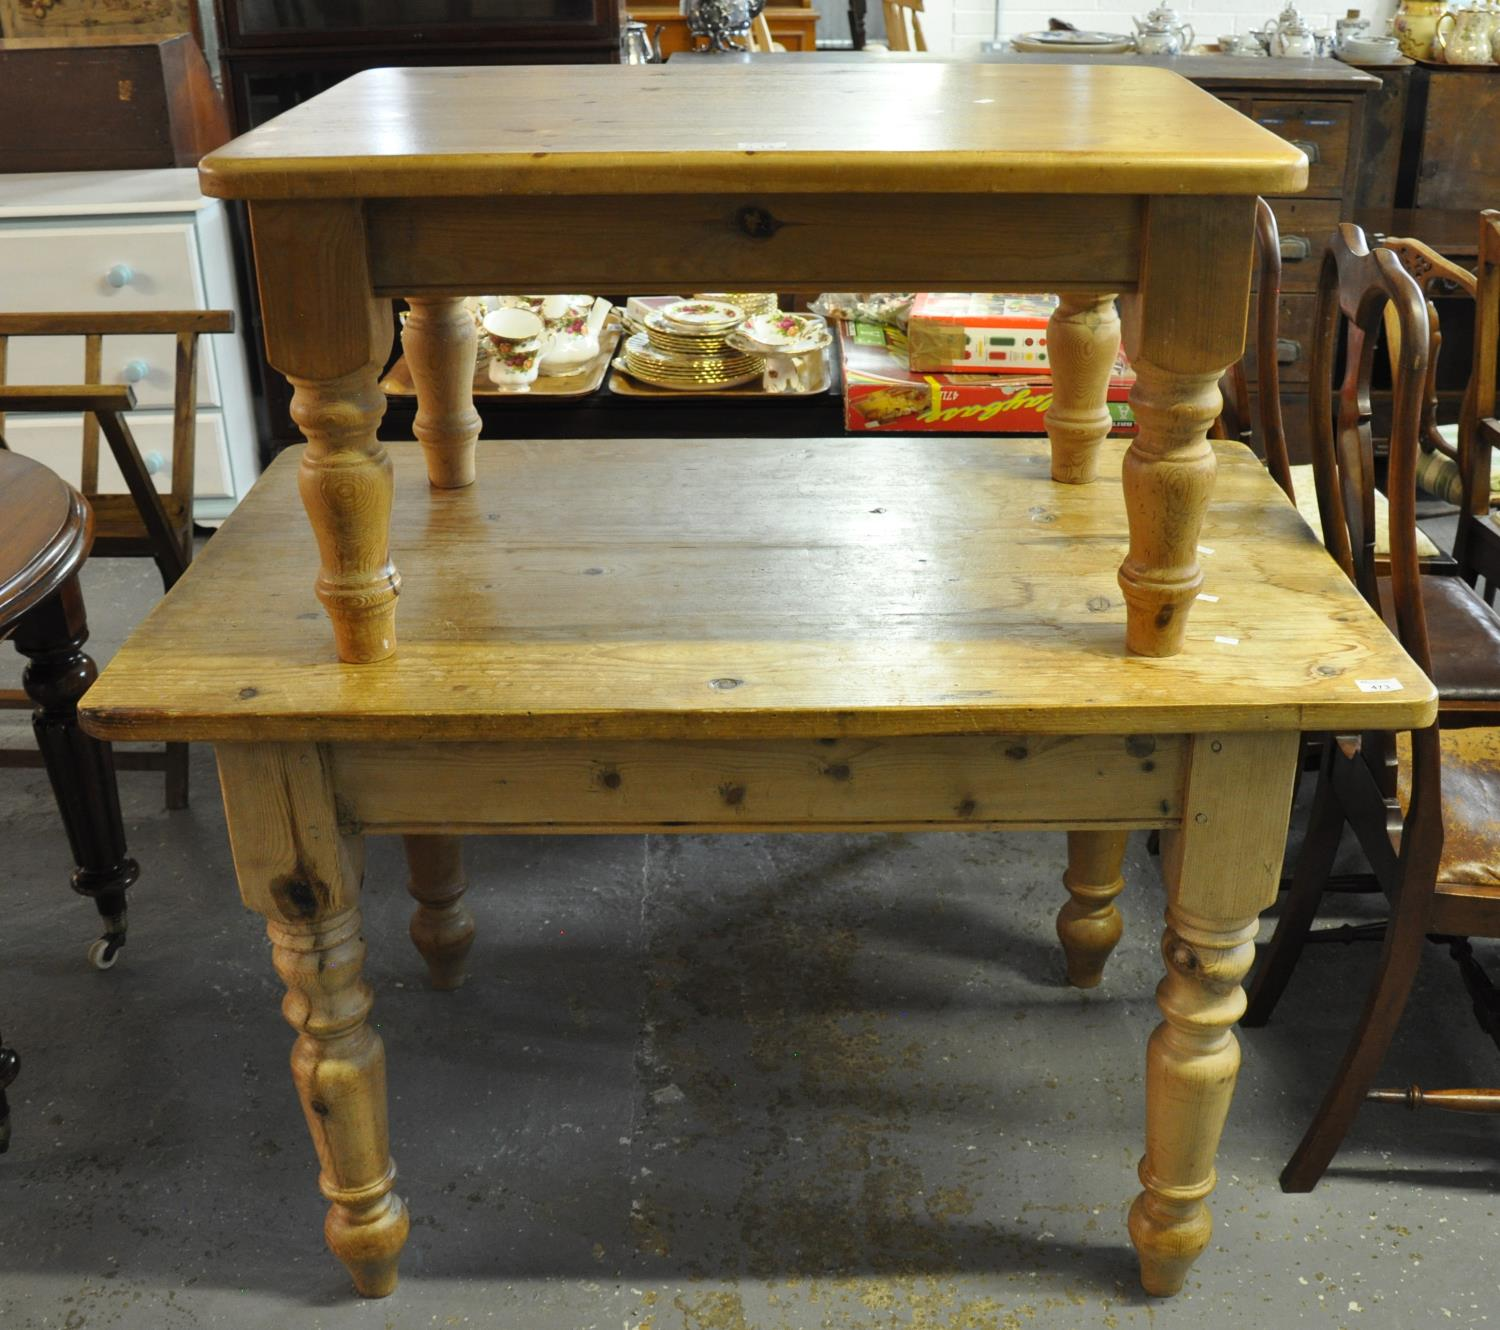 Pine farmhouse kitchen table on baluster turned legs, together with a smaller pine coffee table on